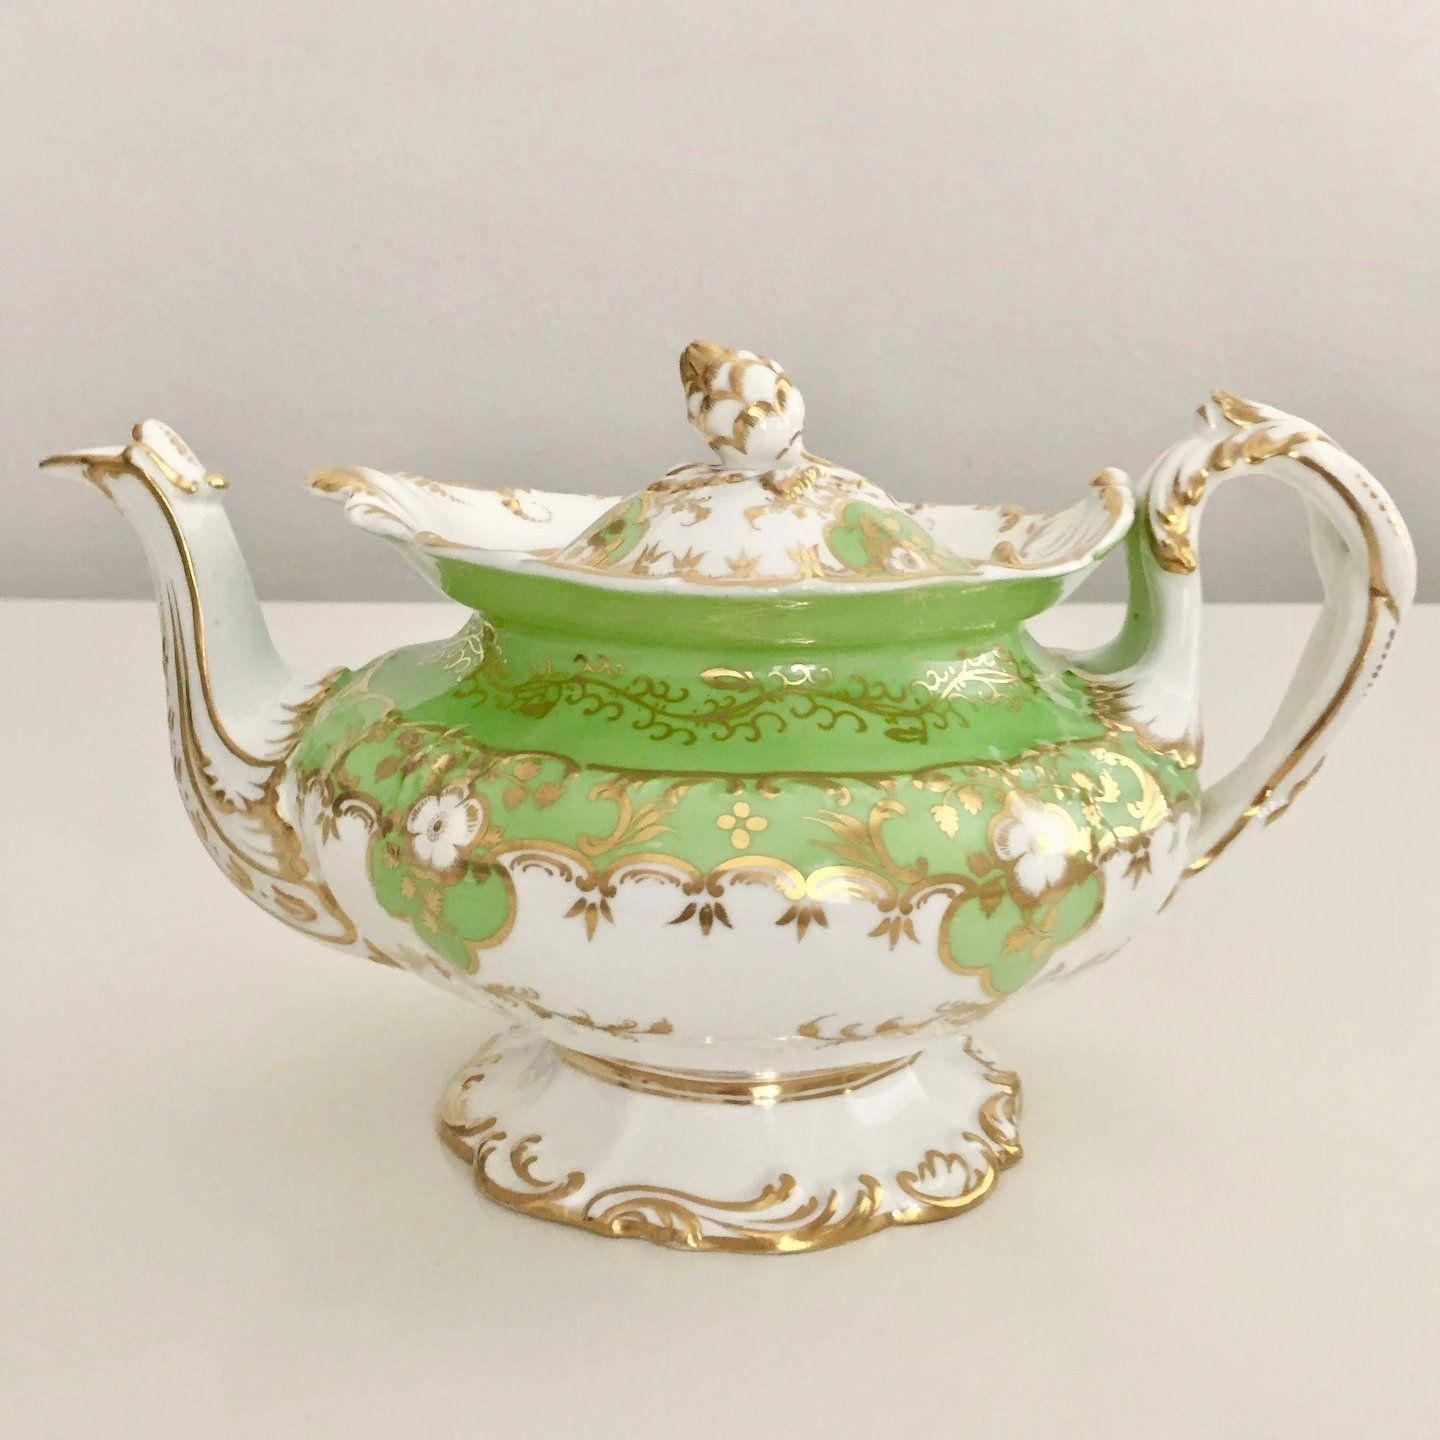 Stunning antique Minton full tea service, Rococo Q-shape patt. 4606 ...